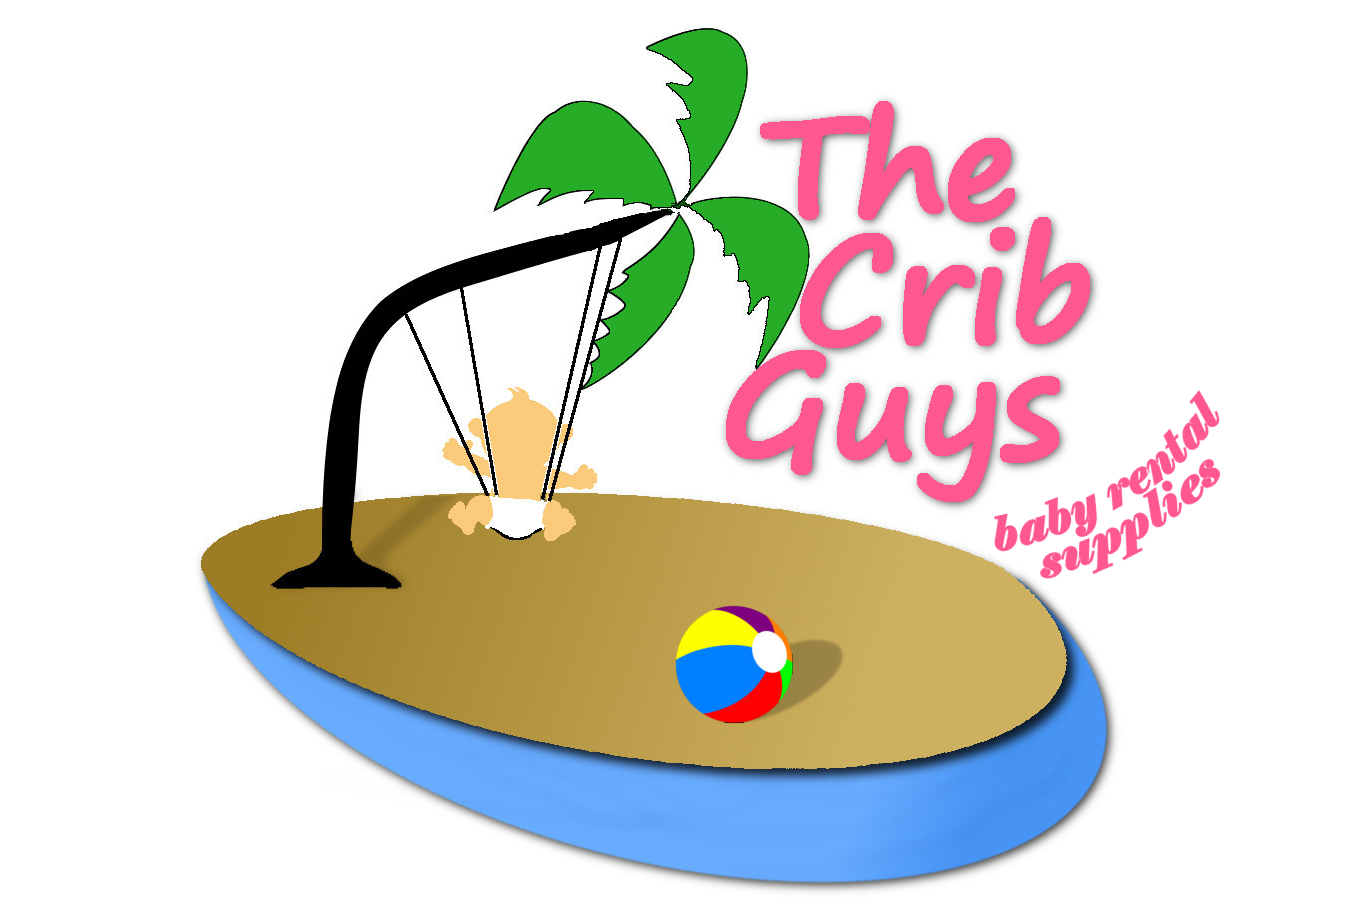 Crib Guys Logo baby equipment rental, infant equipment rental South Carolina, baby rentals gear, toddler equipment rental, toddler rentals, baby and toddler equipment rental South Carolina, baby toddler equipment rental, equipment rental,